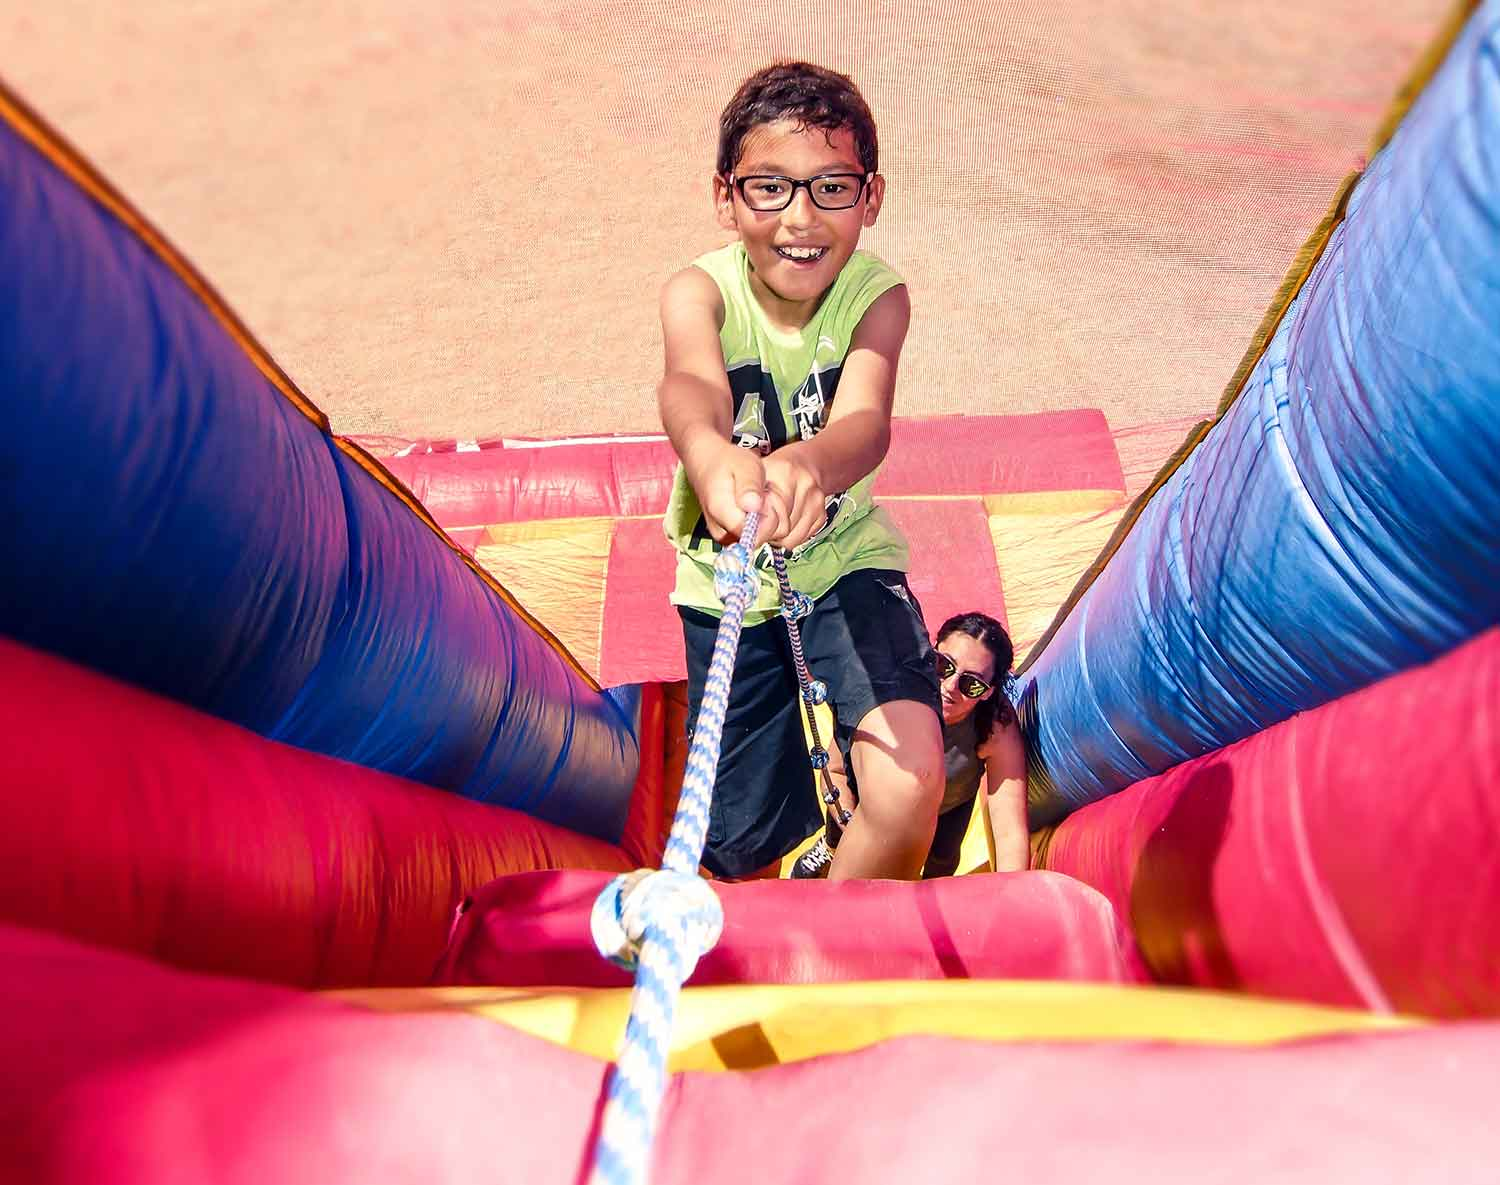 kids-inflatable-obstacle-course